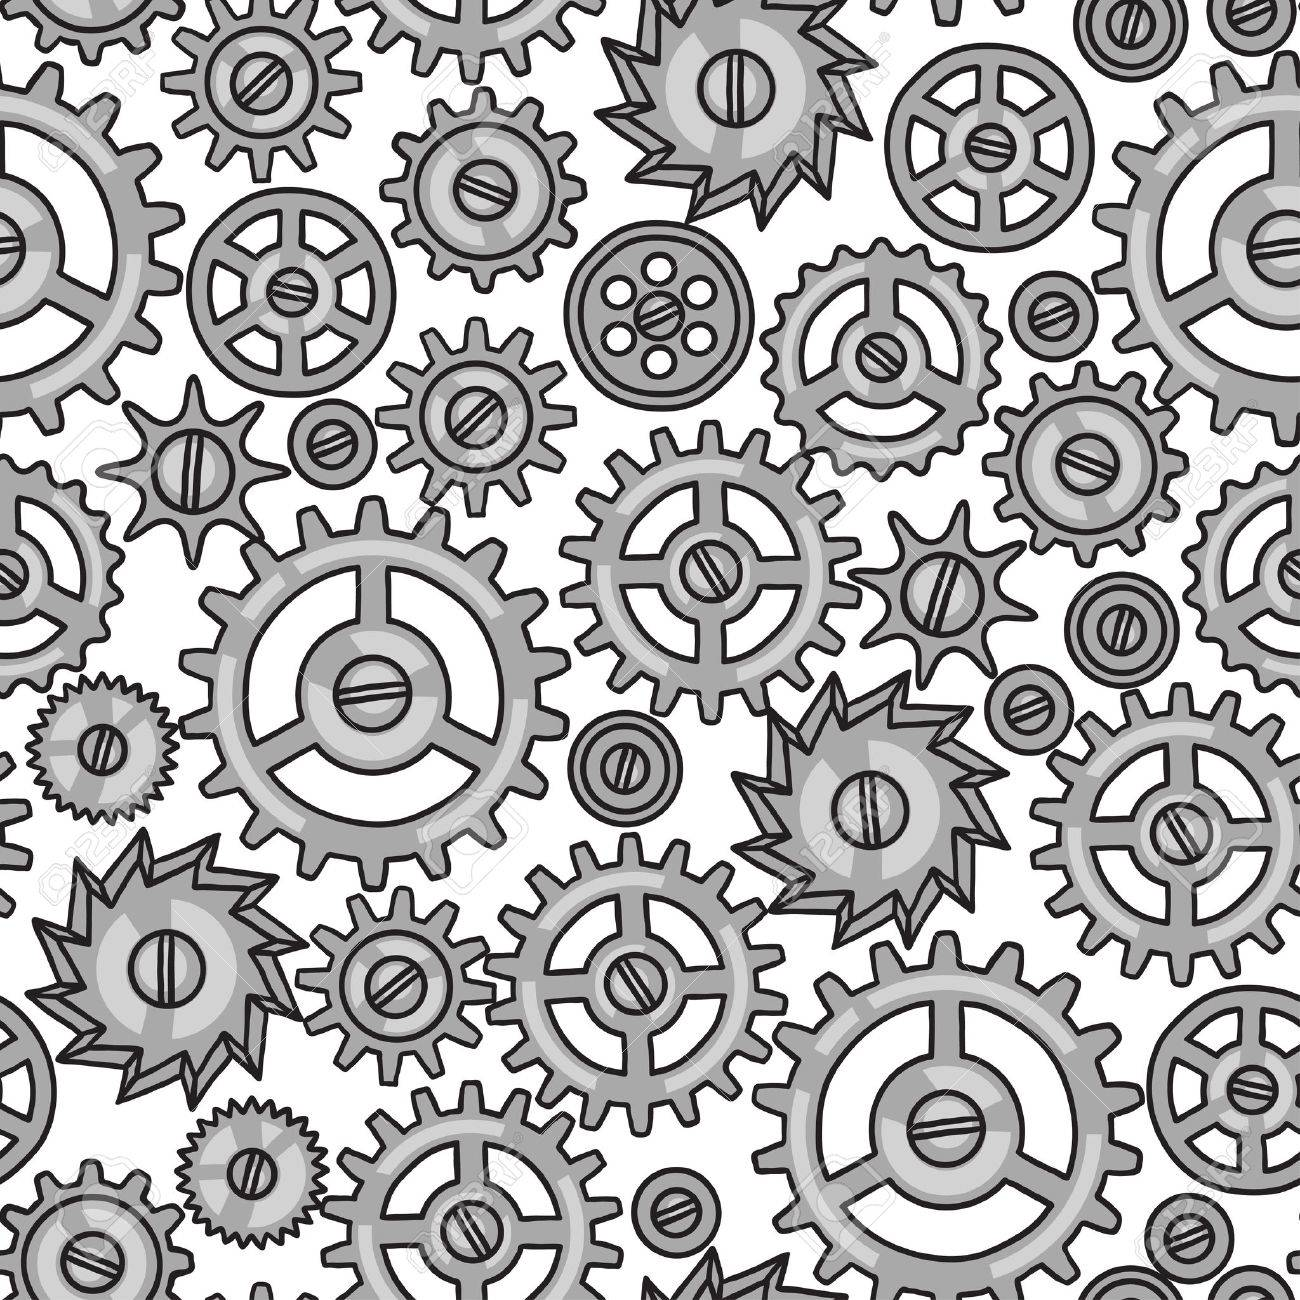 1300x1300 Steampunk Seamless Pattern Of Metal Gears In Doodle Style. Royalty